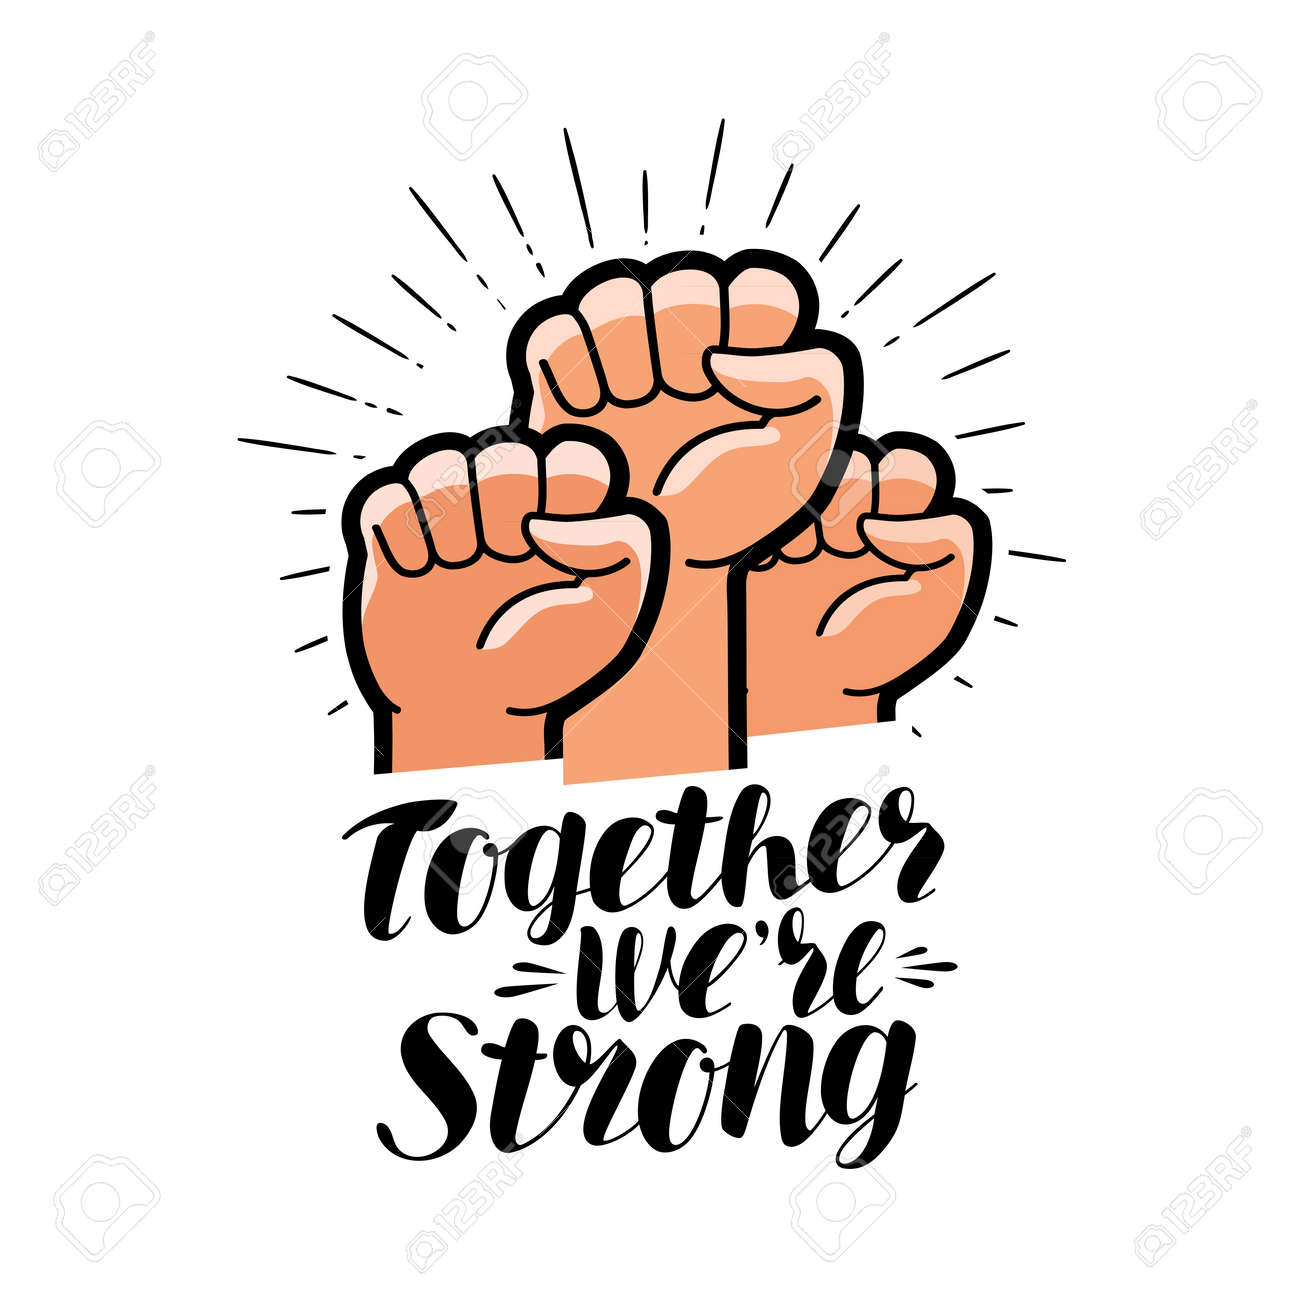 Together were strong, lettering. Raised fist, community symbol. Vector illustration - 86139716